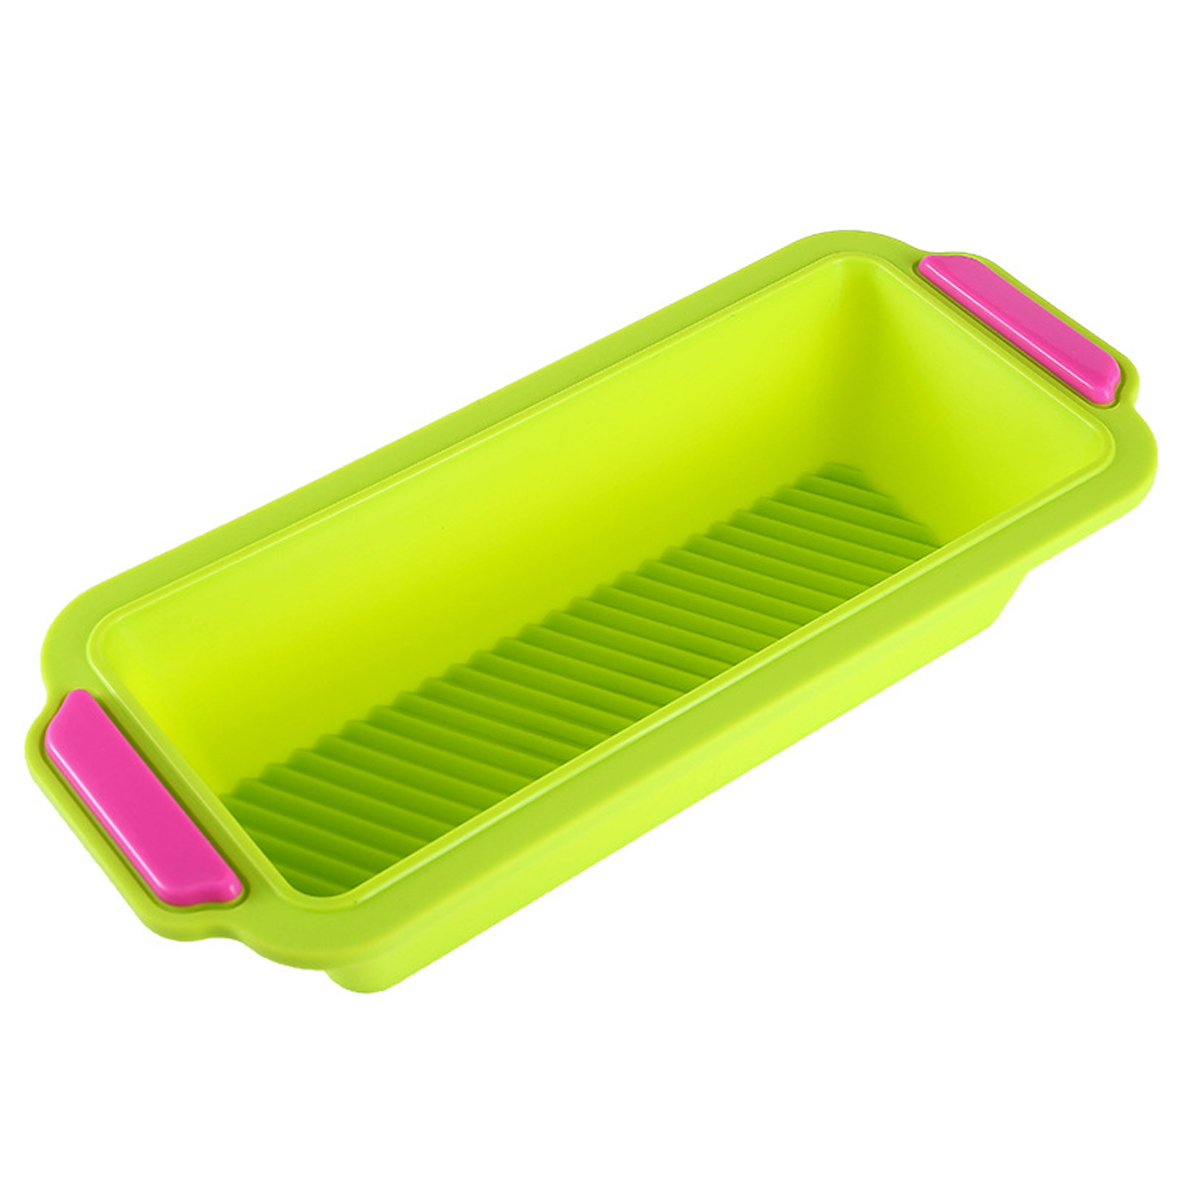 29.2x12.8x6.2cm Silicone Cake Mold DIY Non-stick Bread Toast Mould Loaf Pastry Baking Mold Bakeware